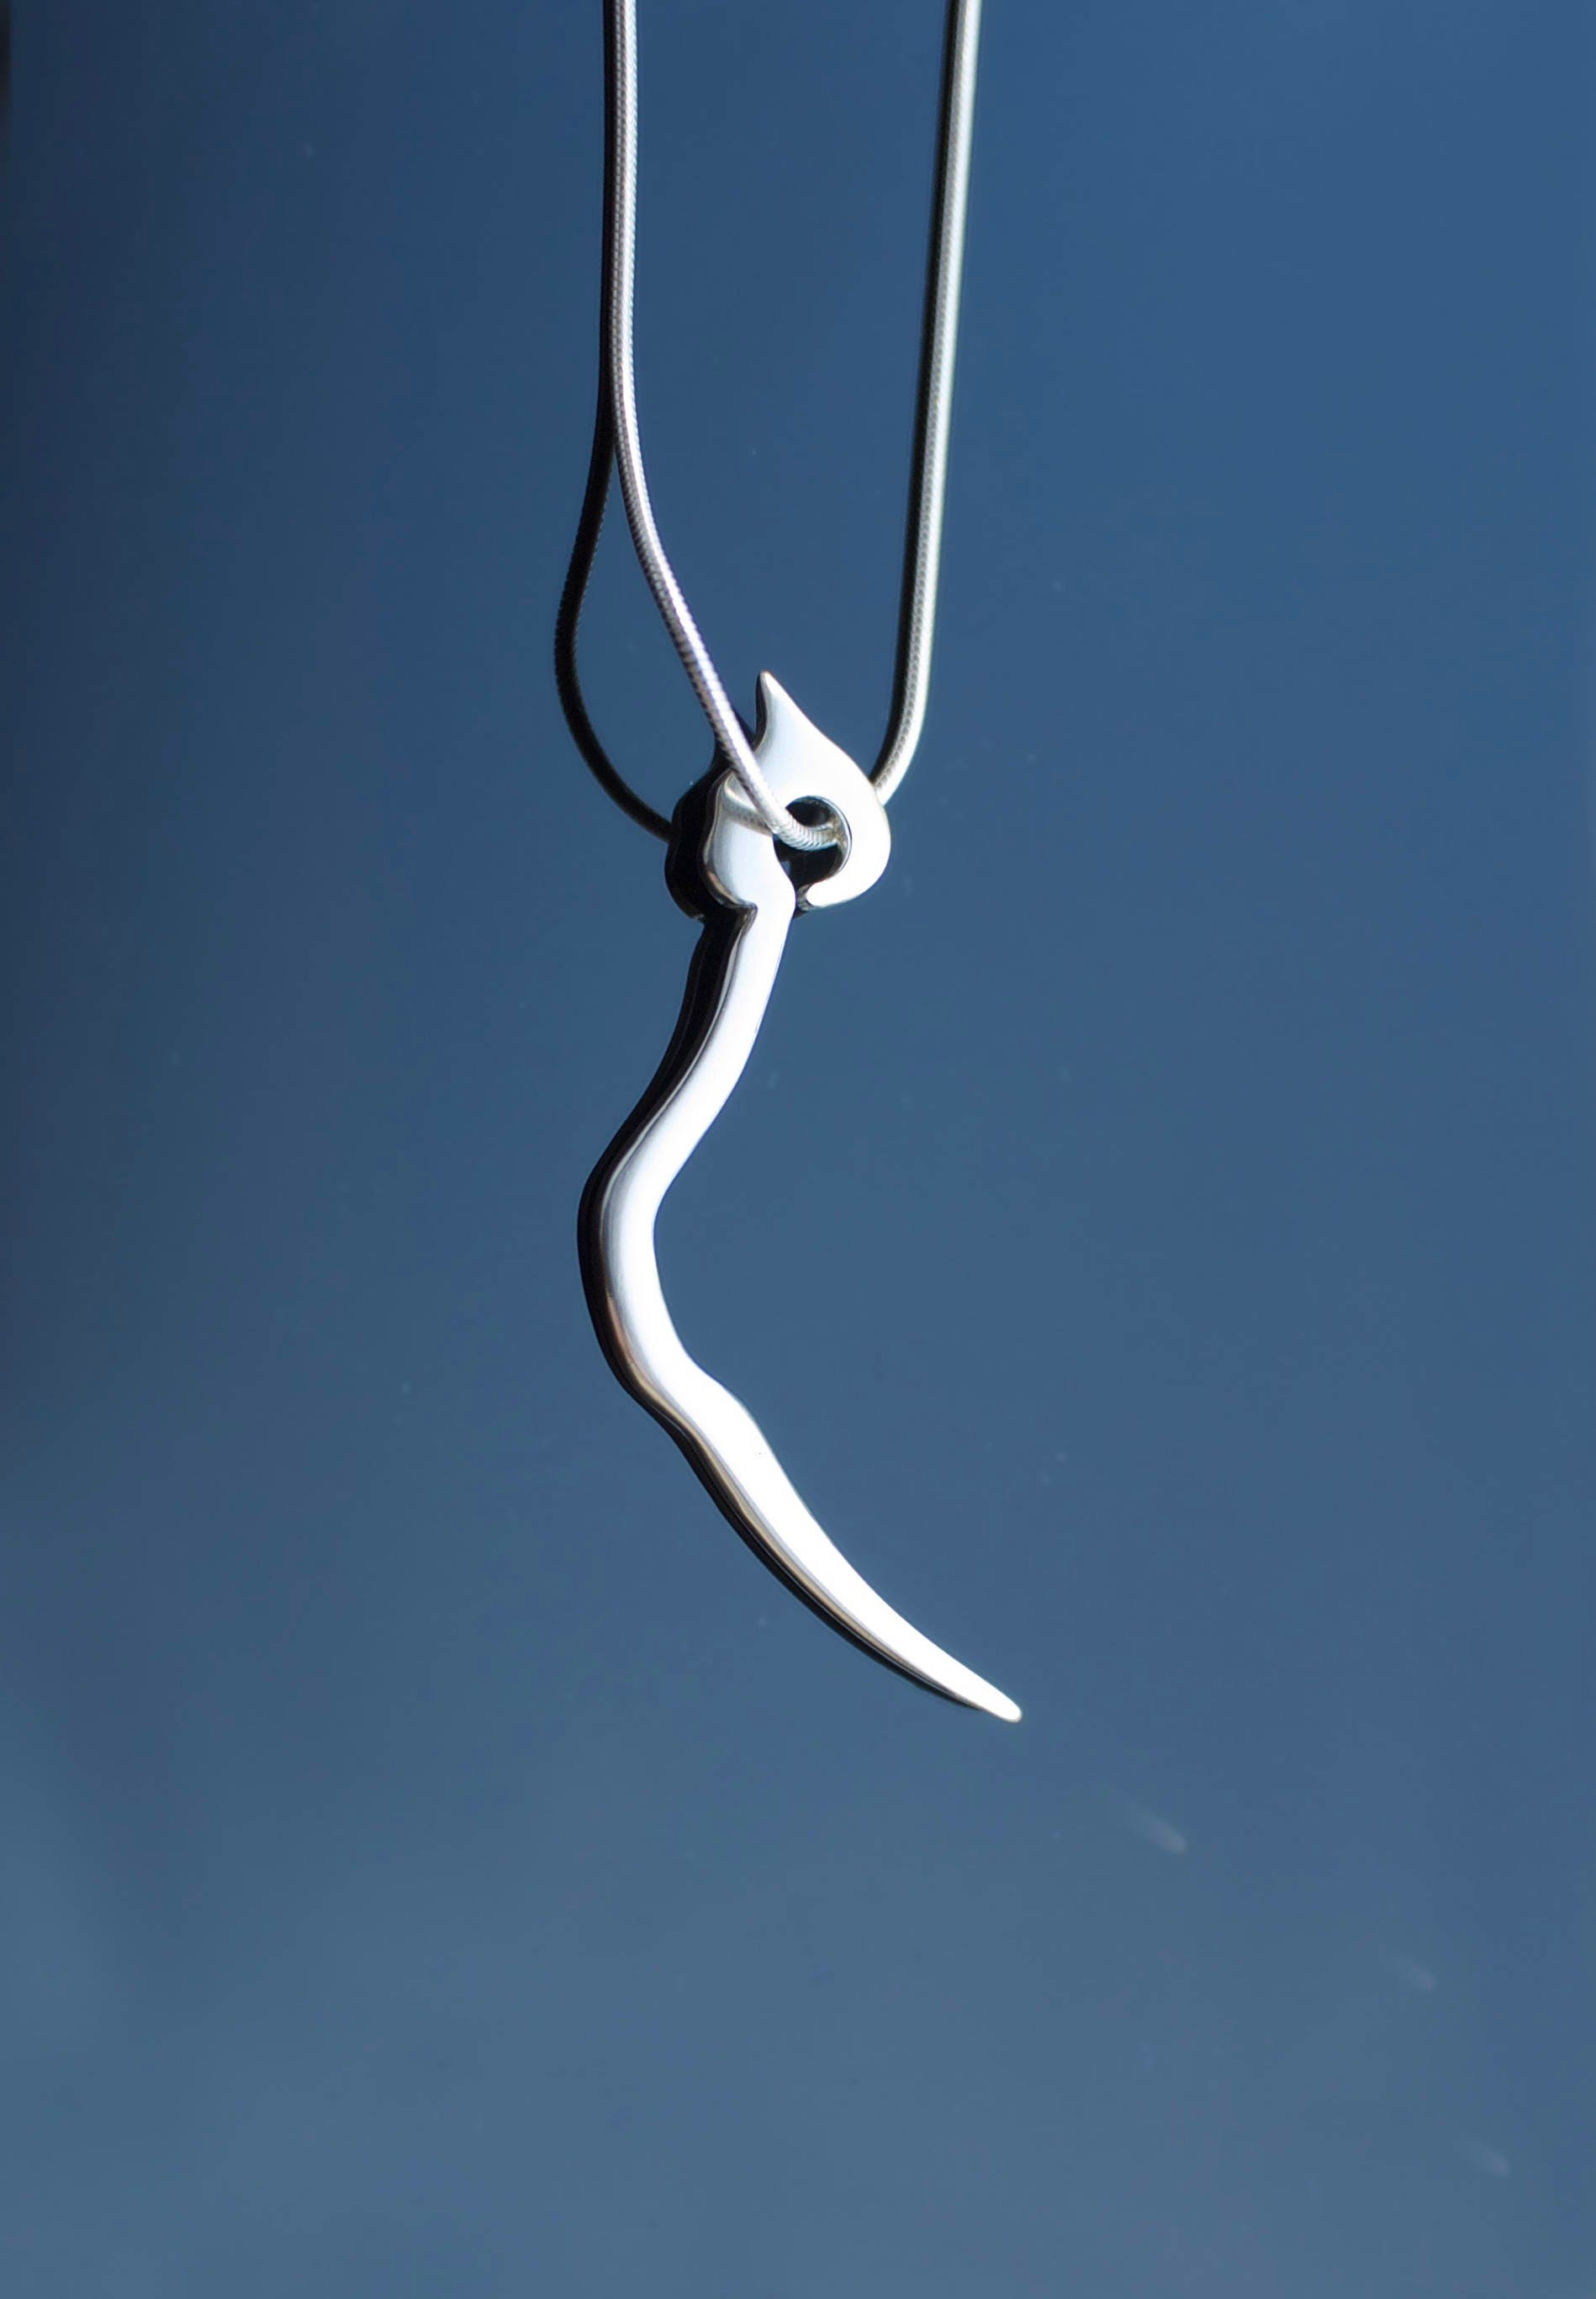 lover cat necklace jewelry silver pin gift jewellery tail swinging sterling